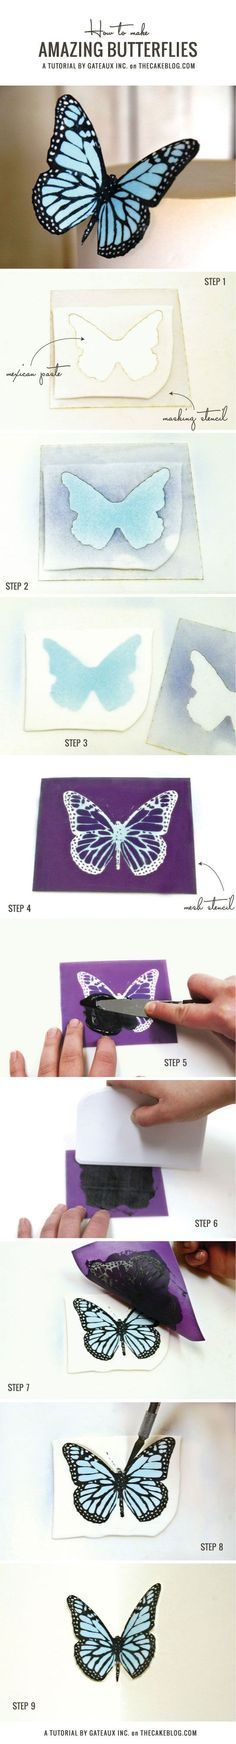 How to make amazing fondant butterflies in no time flat   by Gateux Inc. on TheCakeBlog.com: